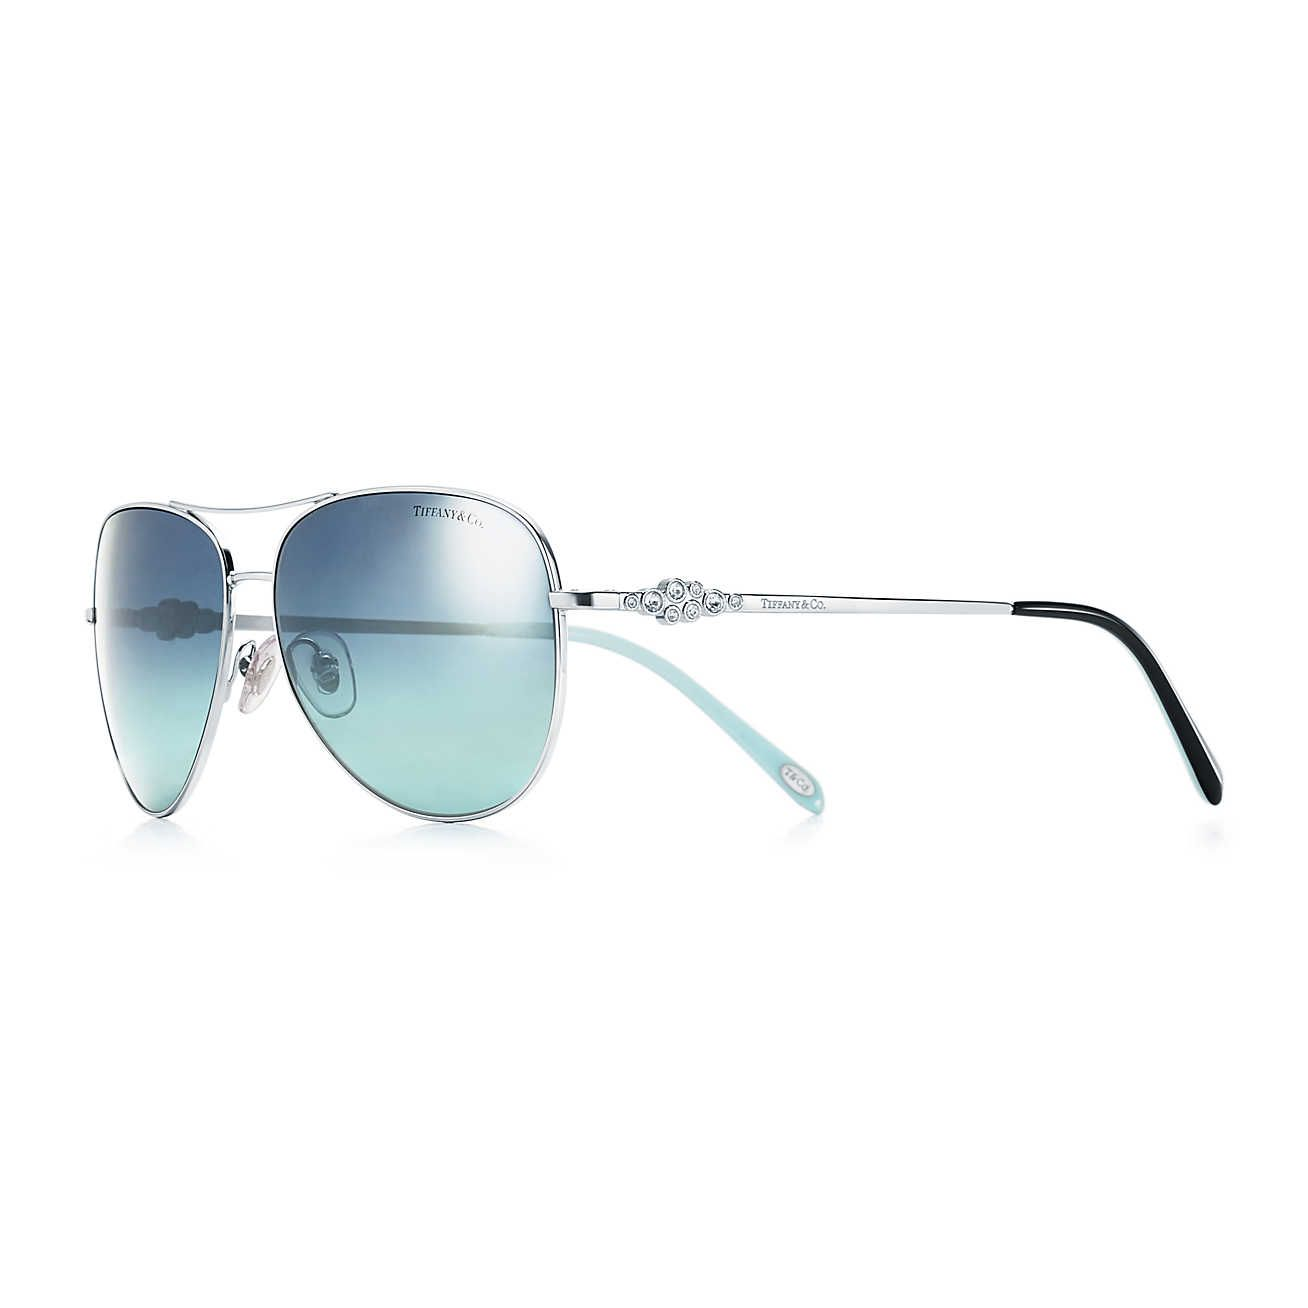 f2c3337566ae Tiffany Cobblestone aviator sunglasses in silver-colored metal and acetate.